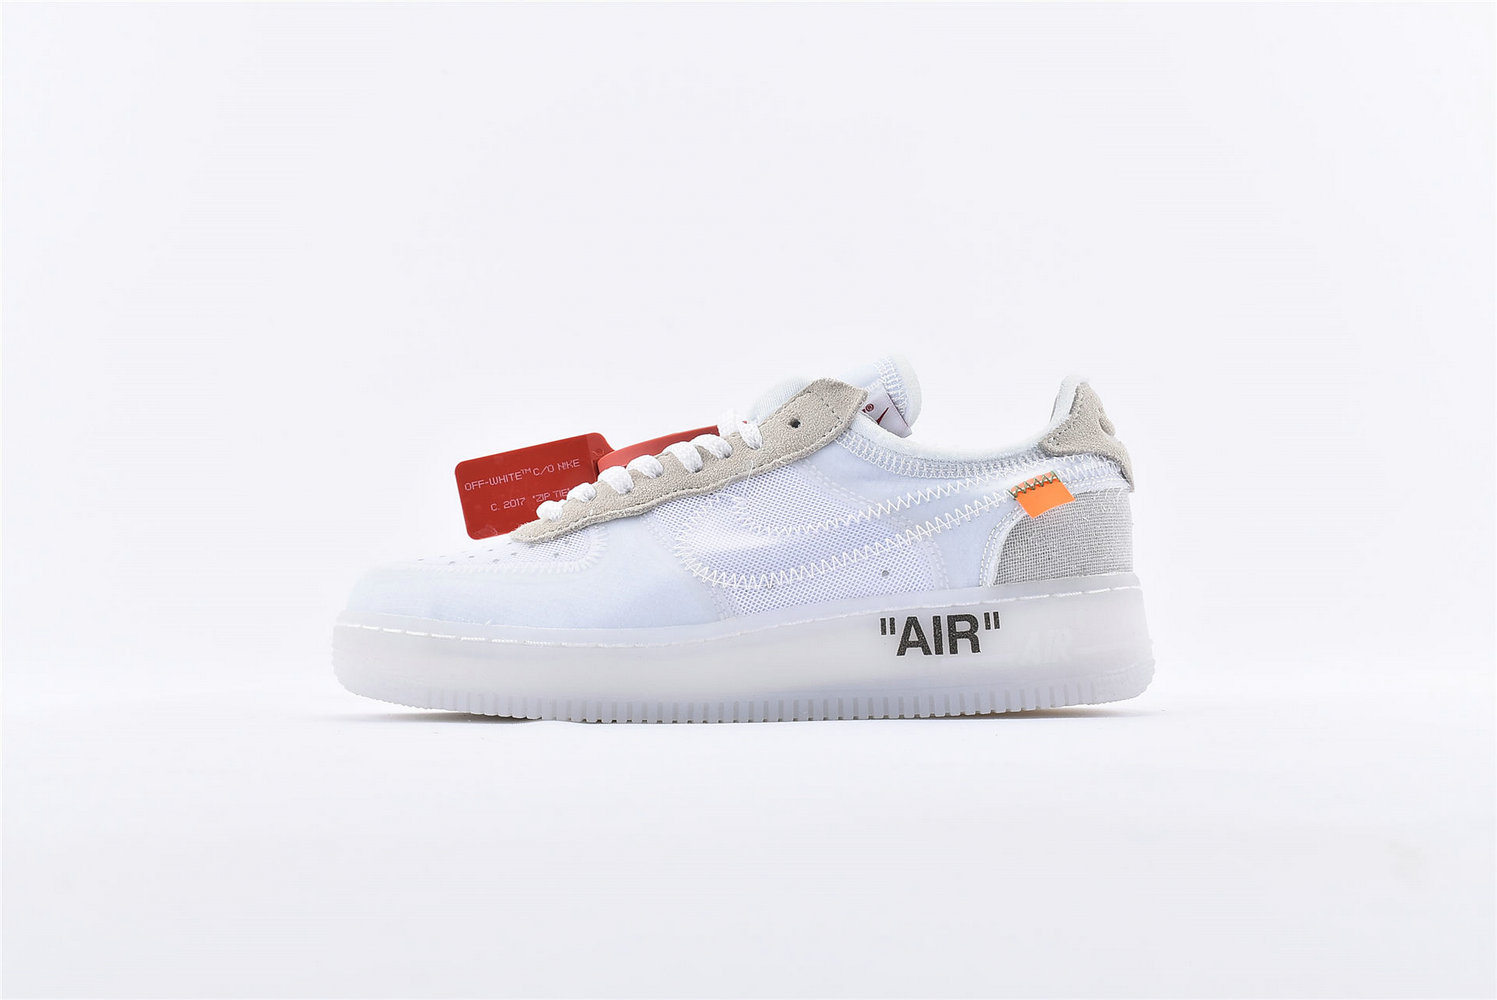 Where To Buy Cheap Off-White x Nike Air Force 1 Low White-White-Sail AO4606-100 On VaporMaxRunning